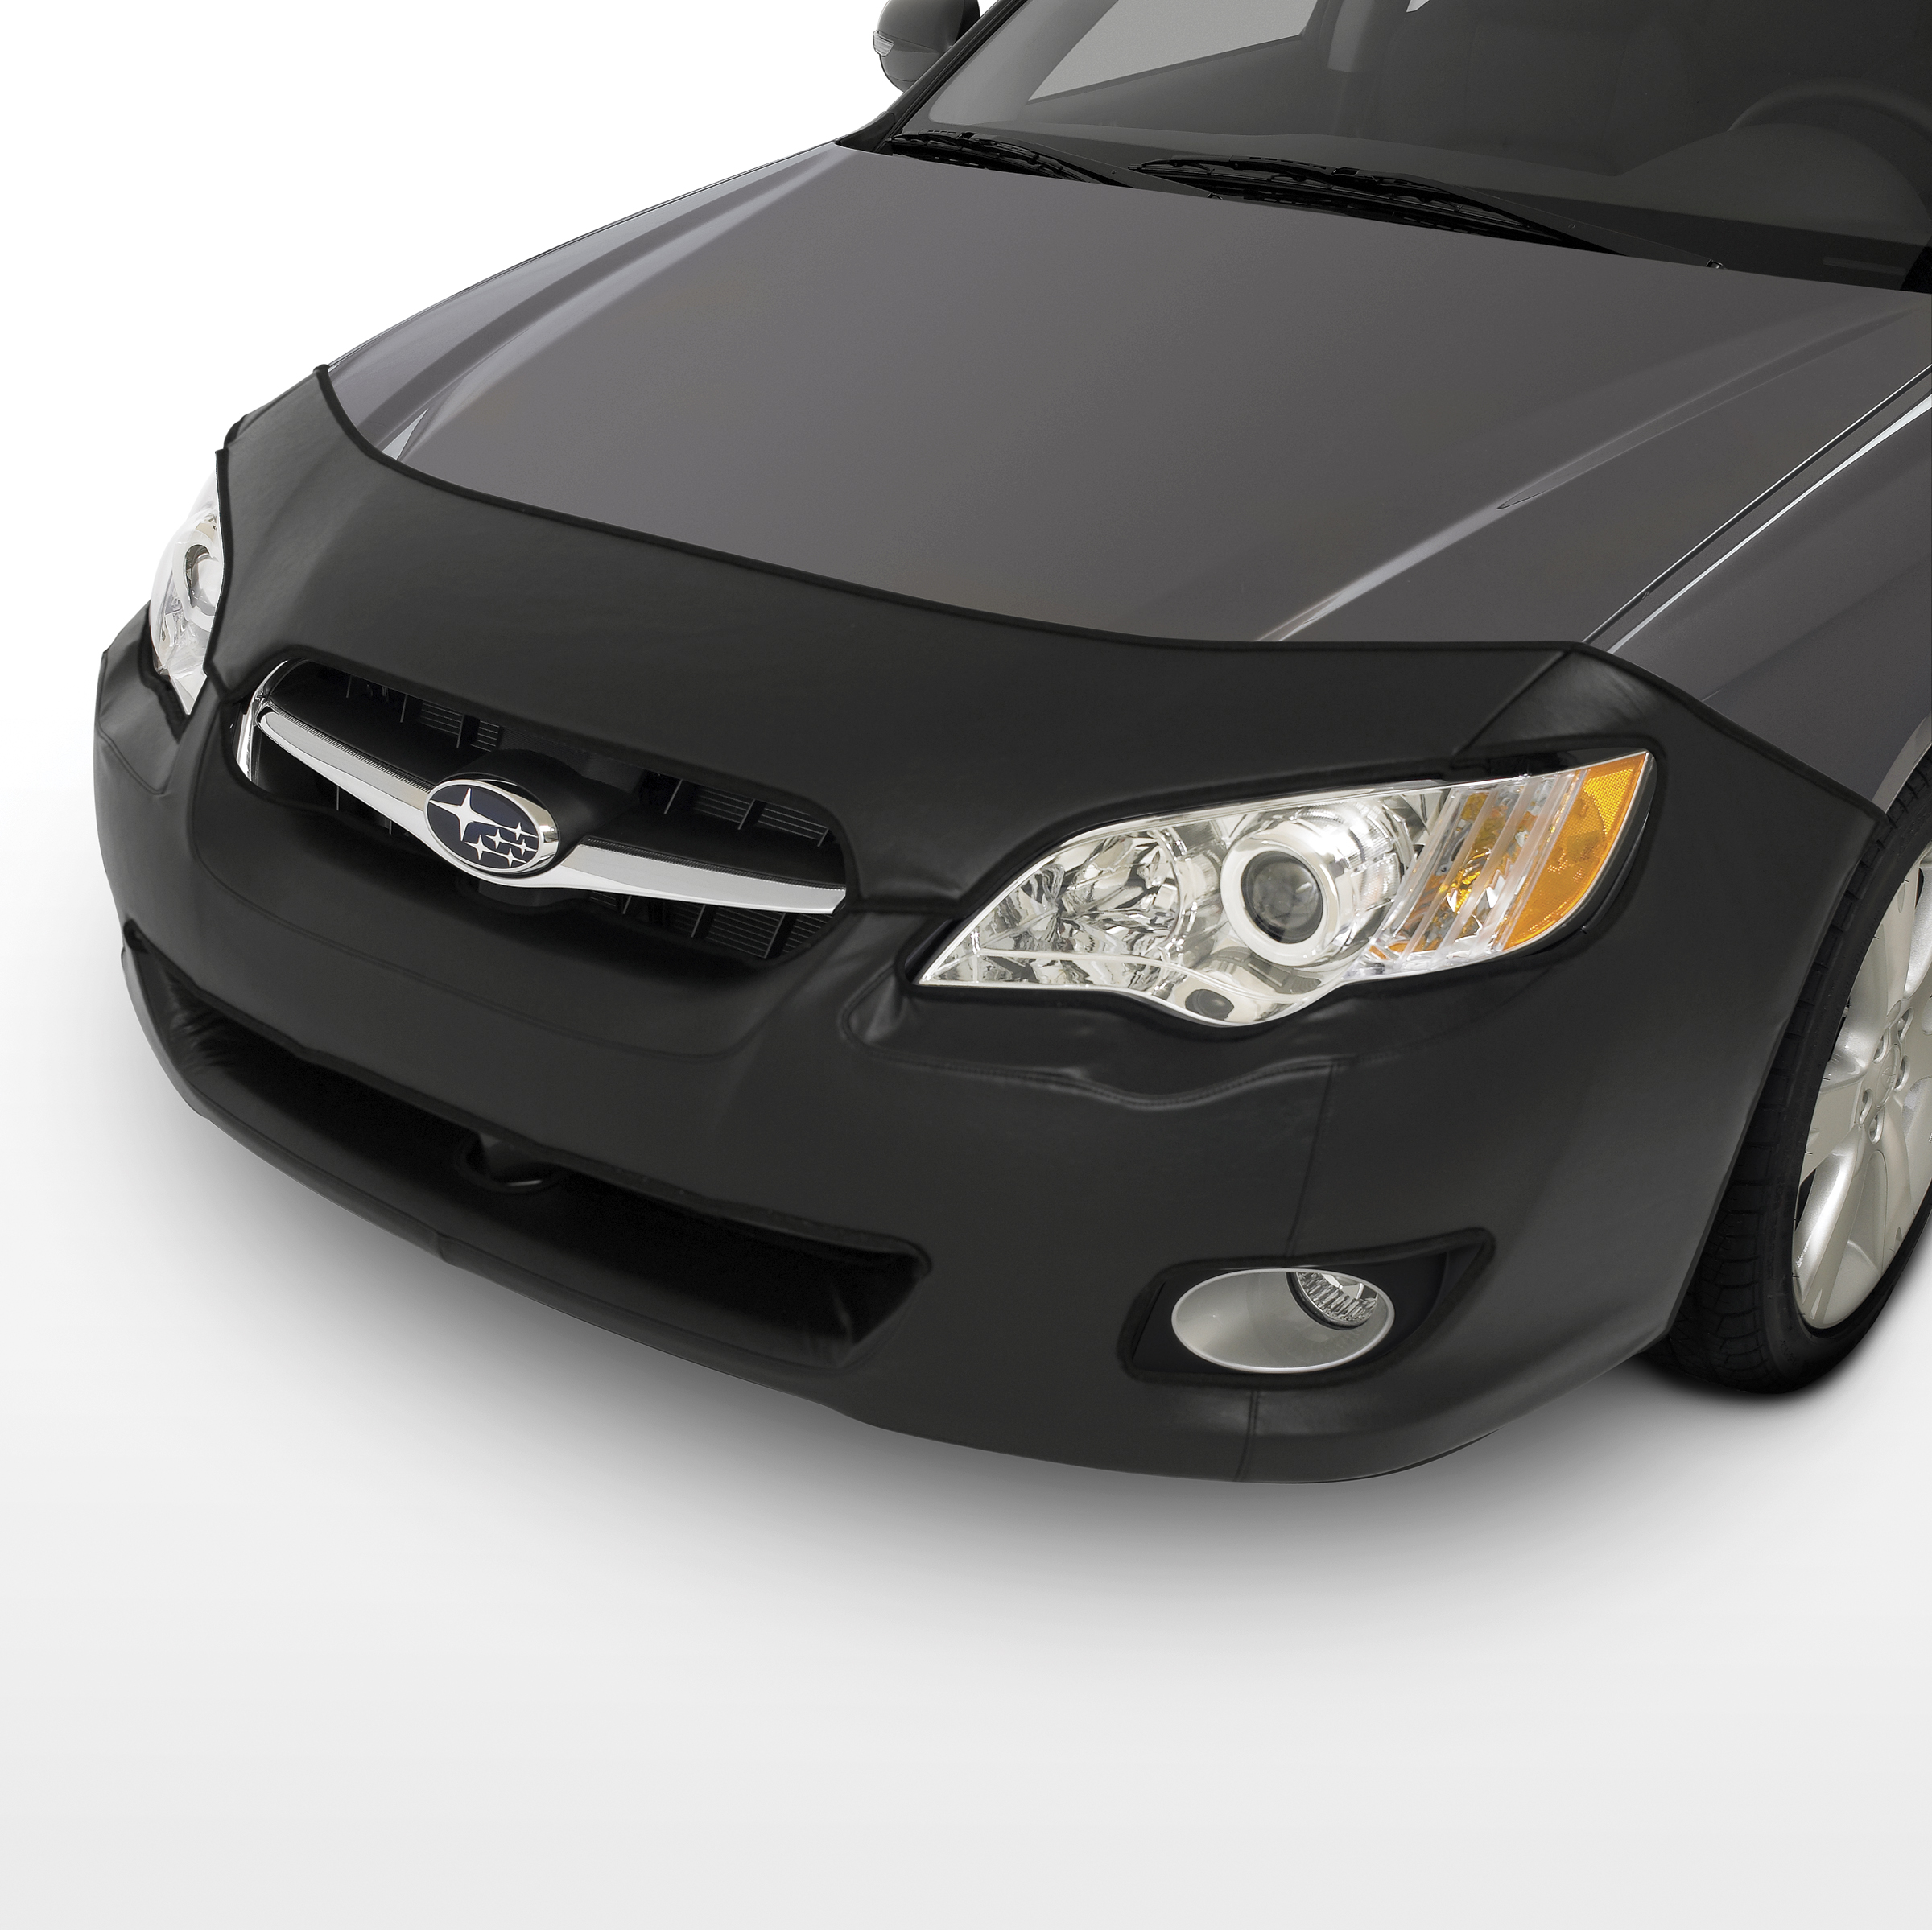 Subaru Front End Cover-Full